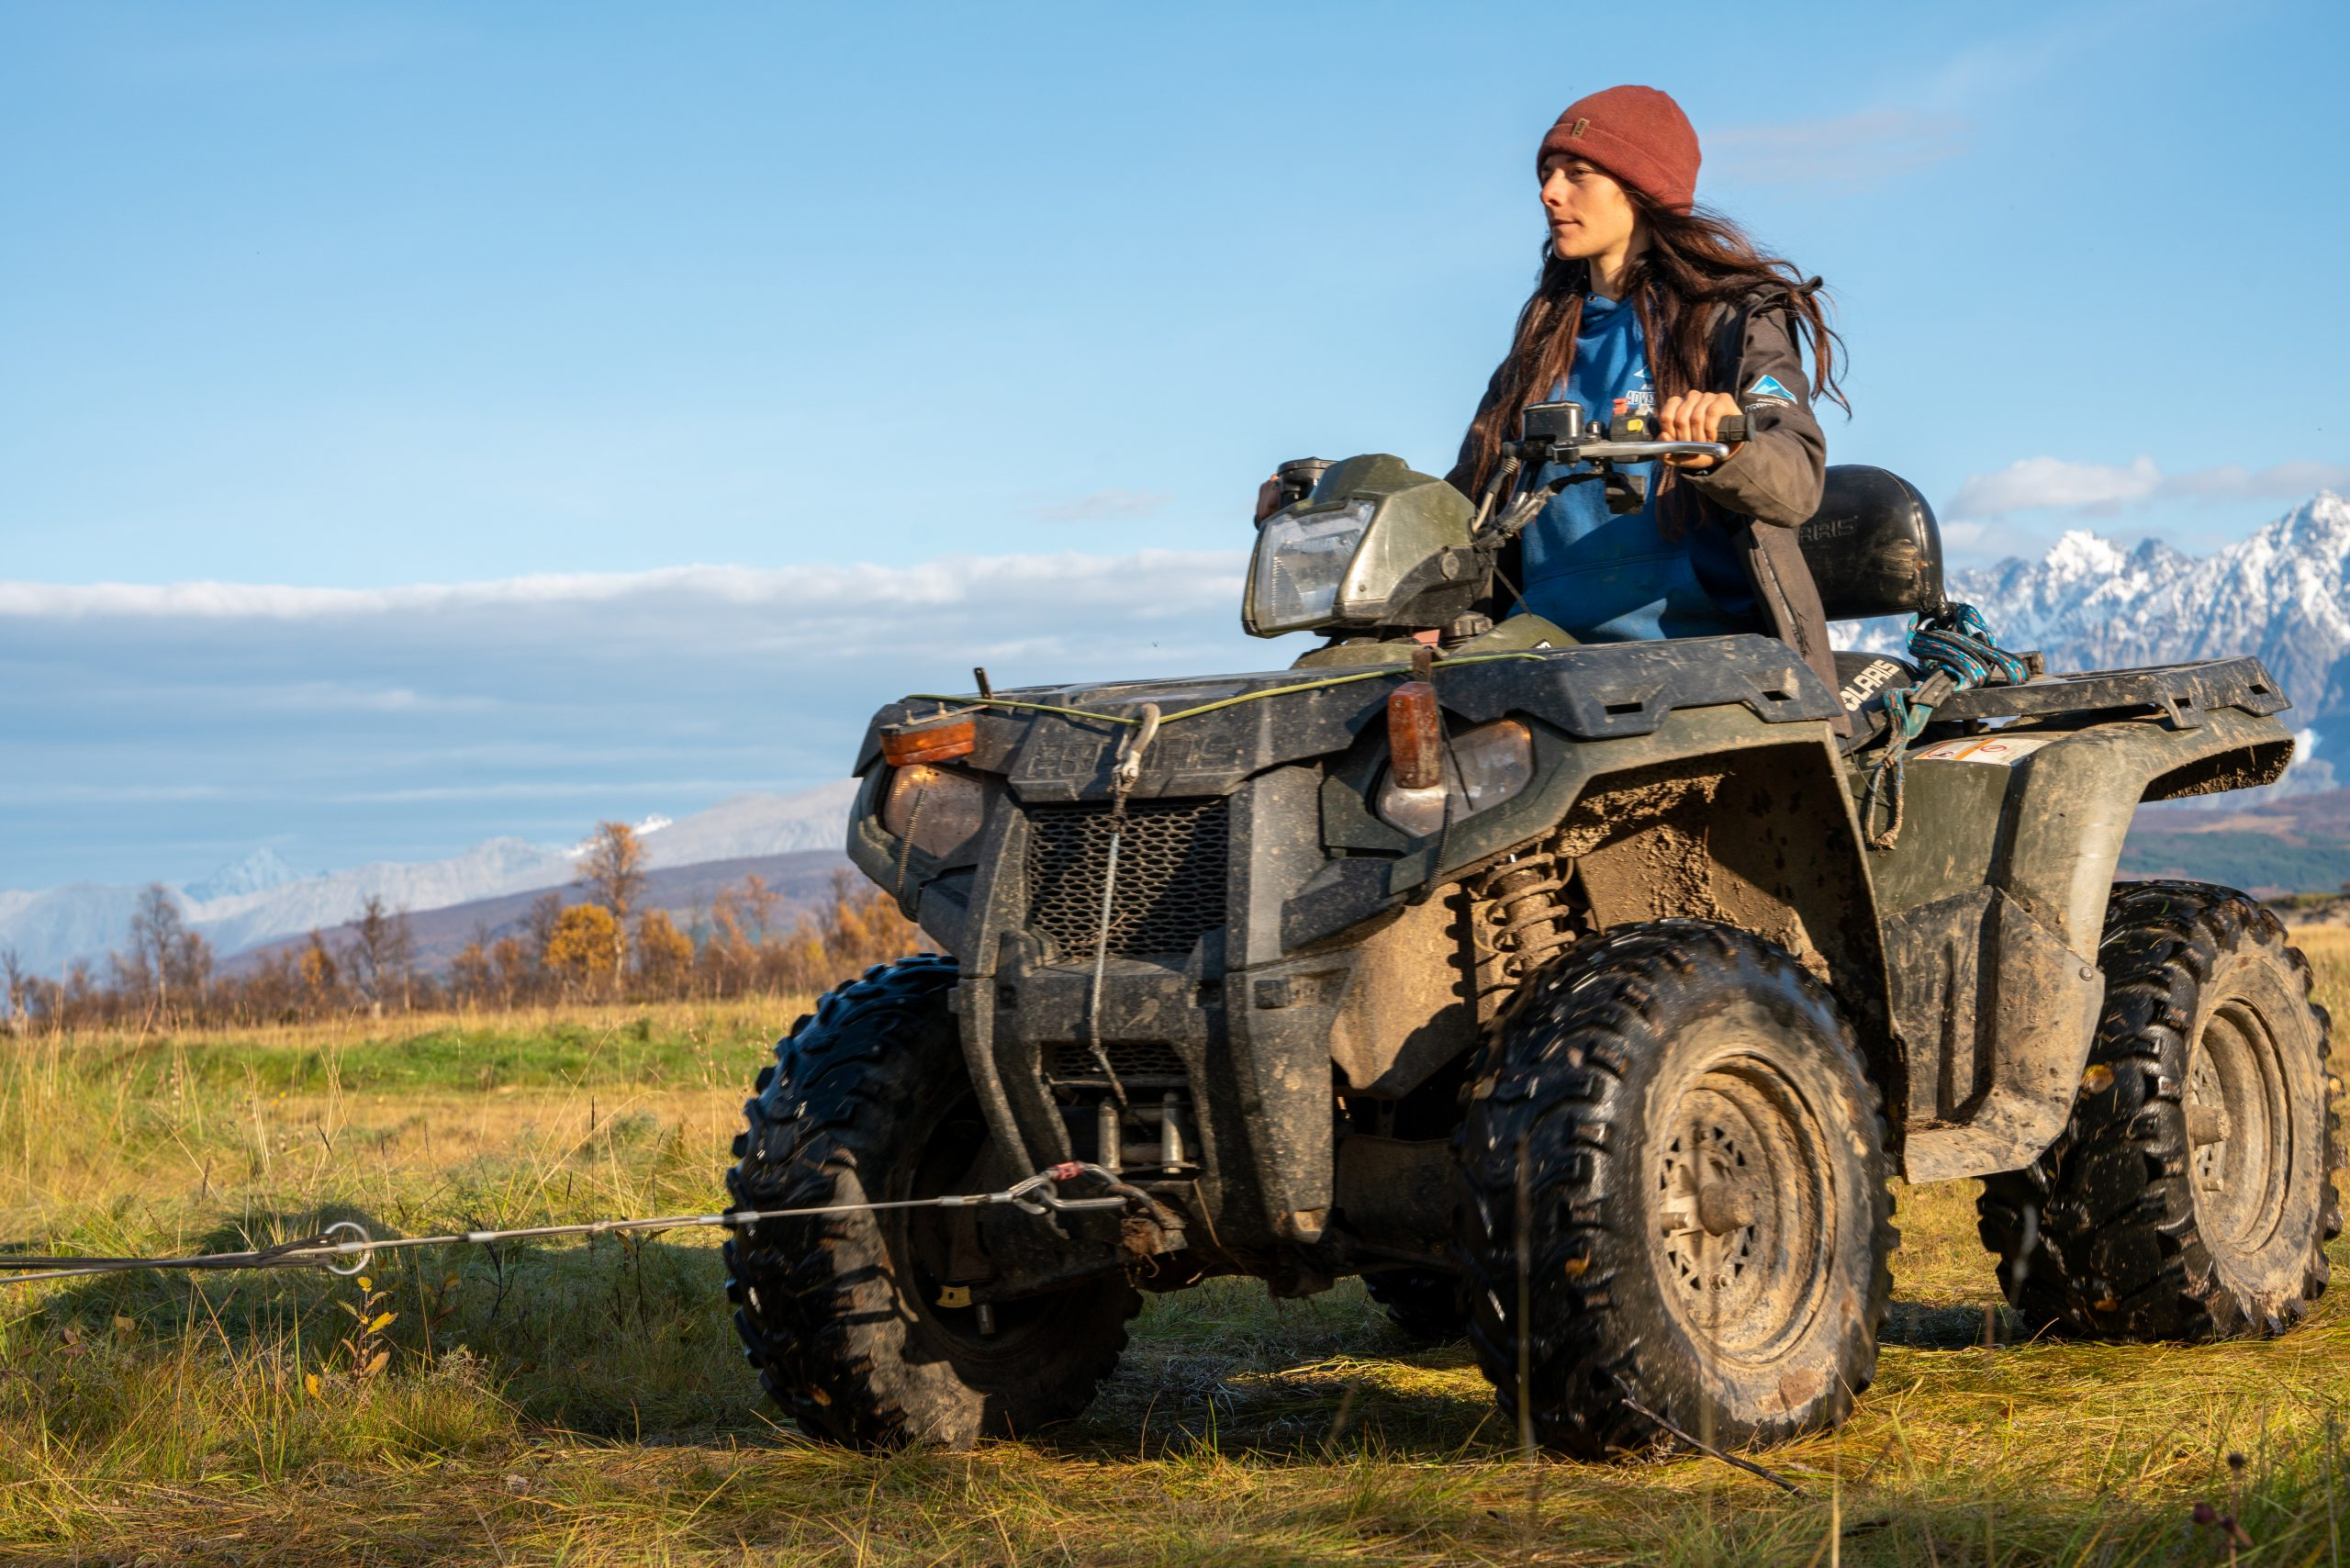 woman driving quad bike in red hat